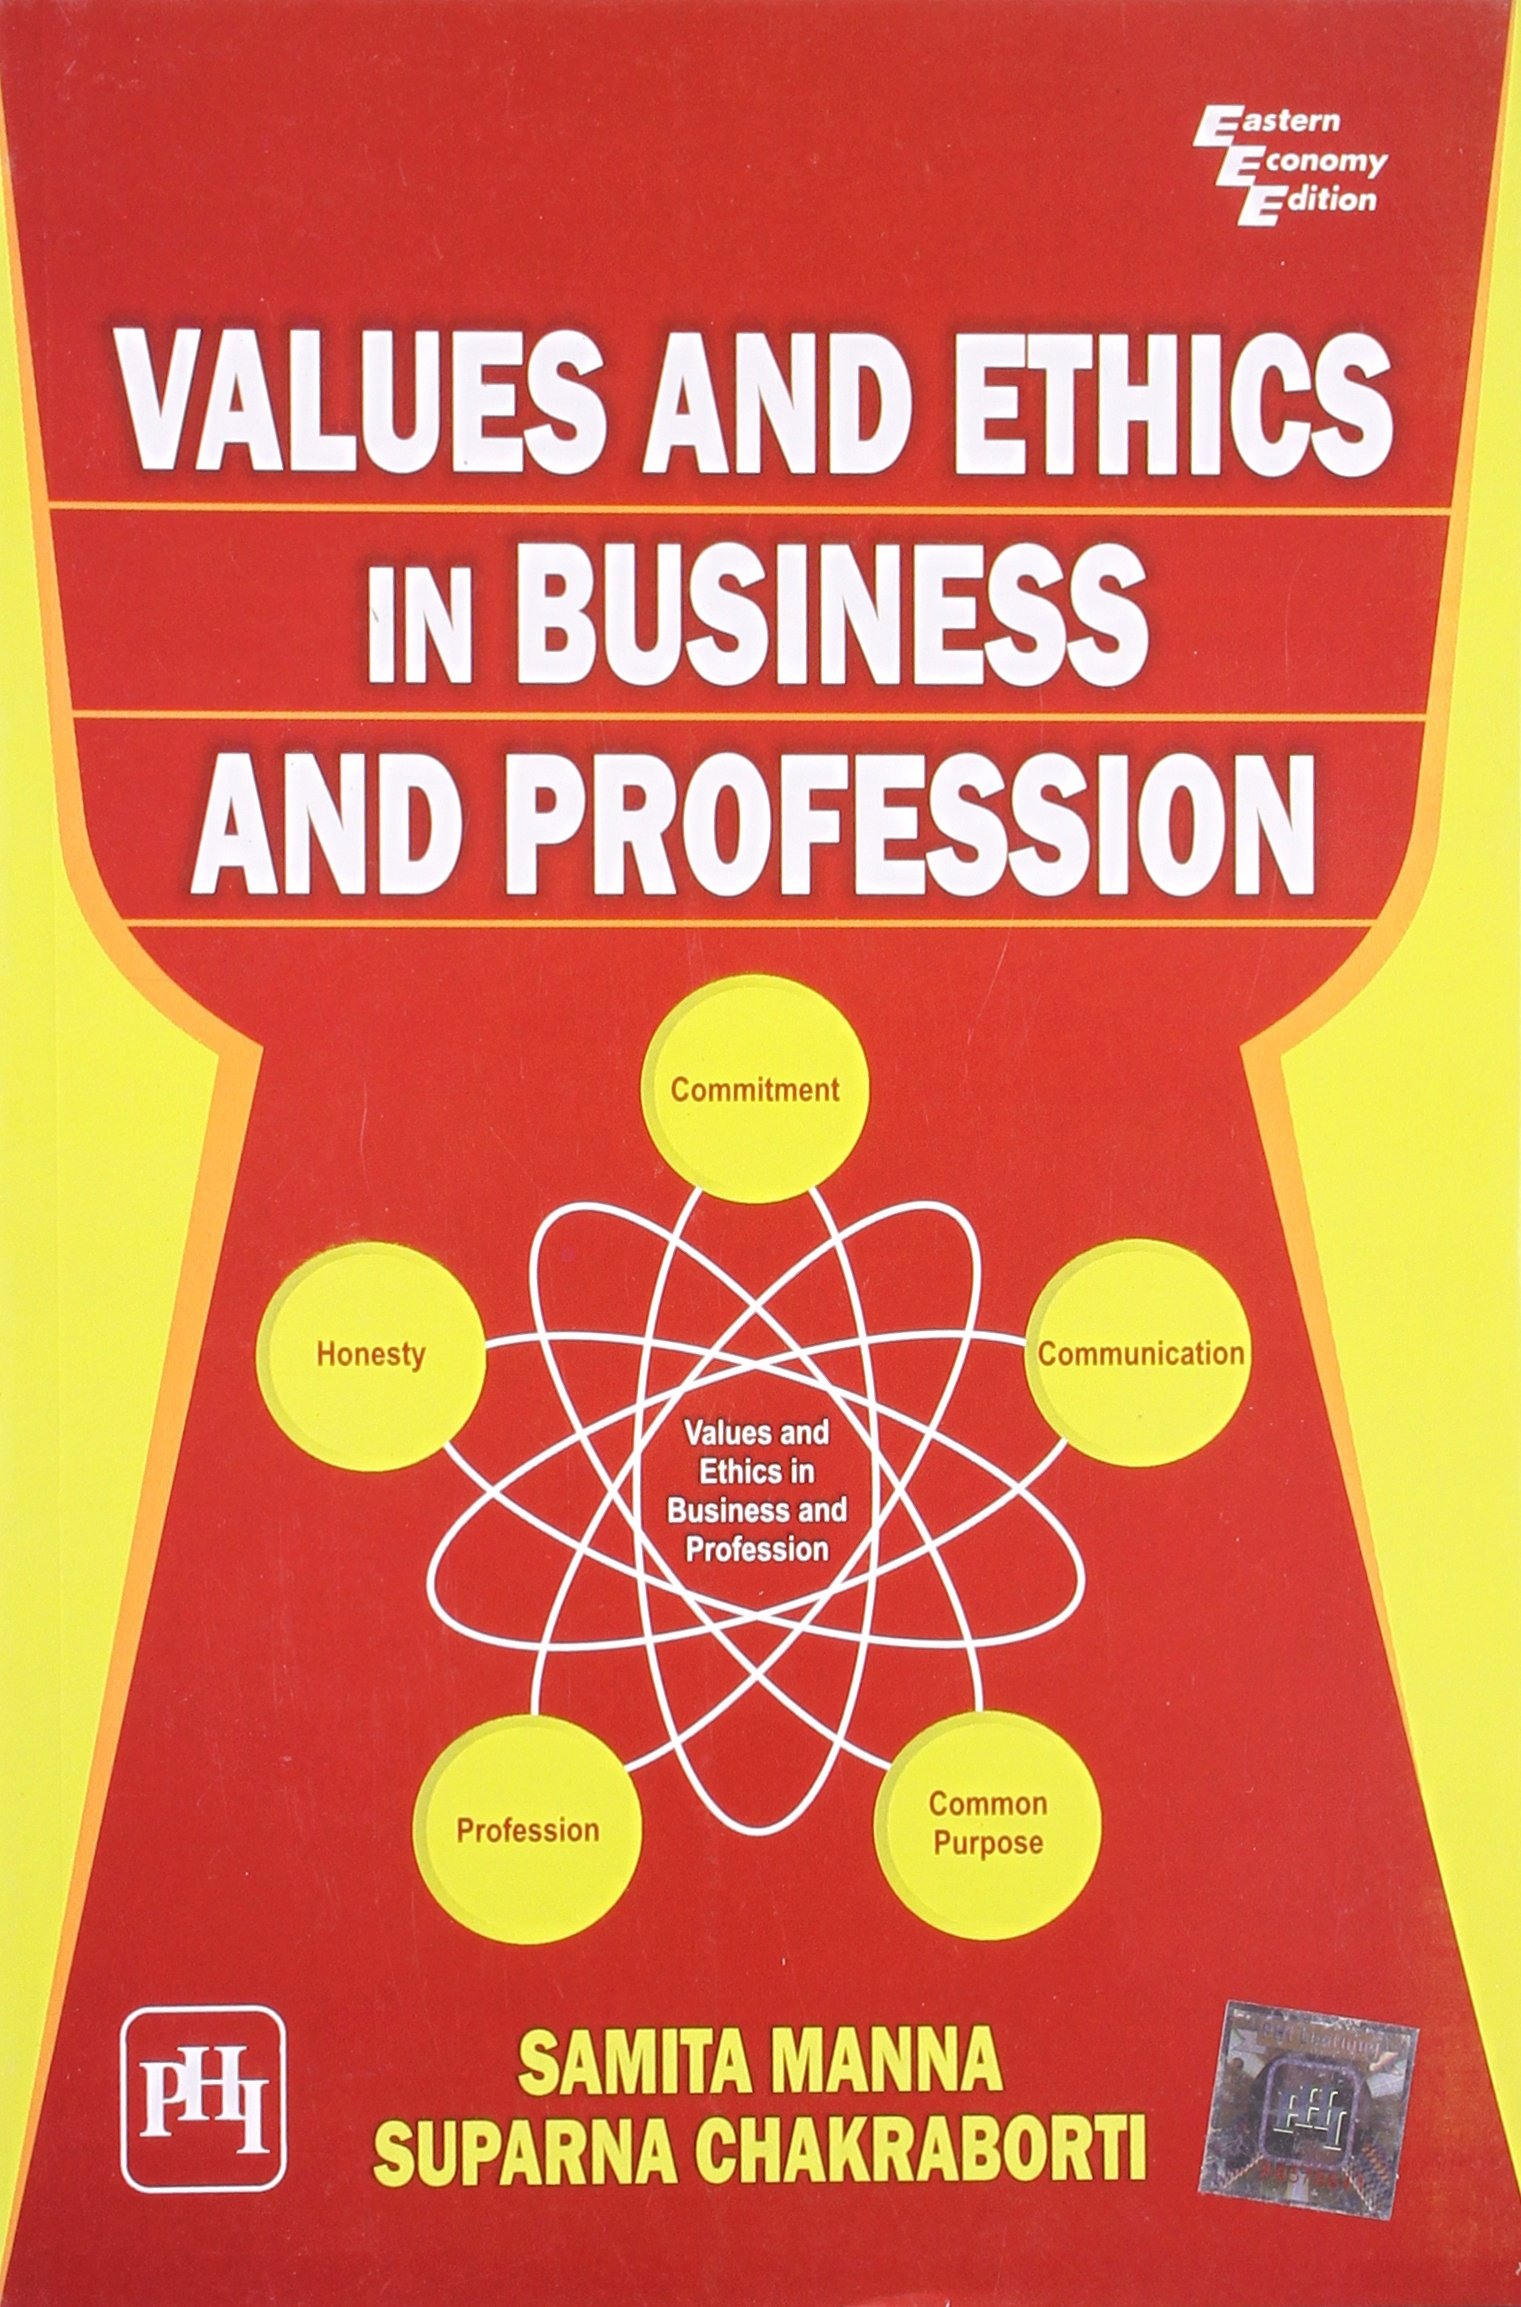 VALUES AND ETHICS IN PROFESSION EBOOK DOWNLOAD